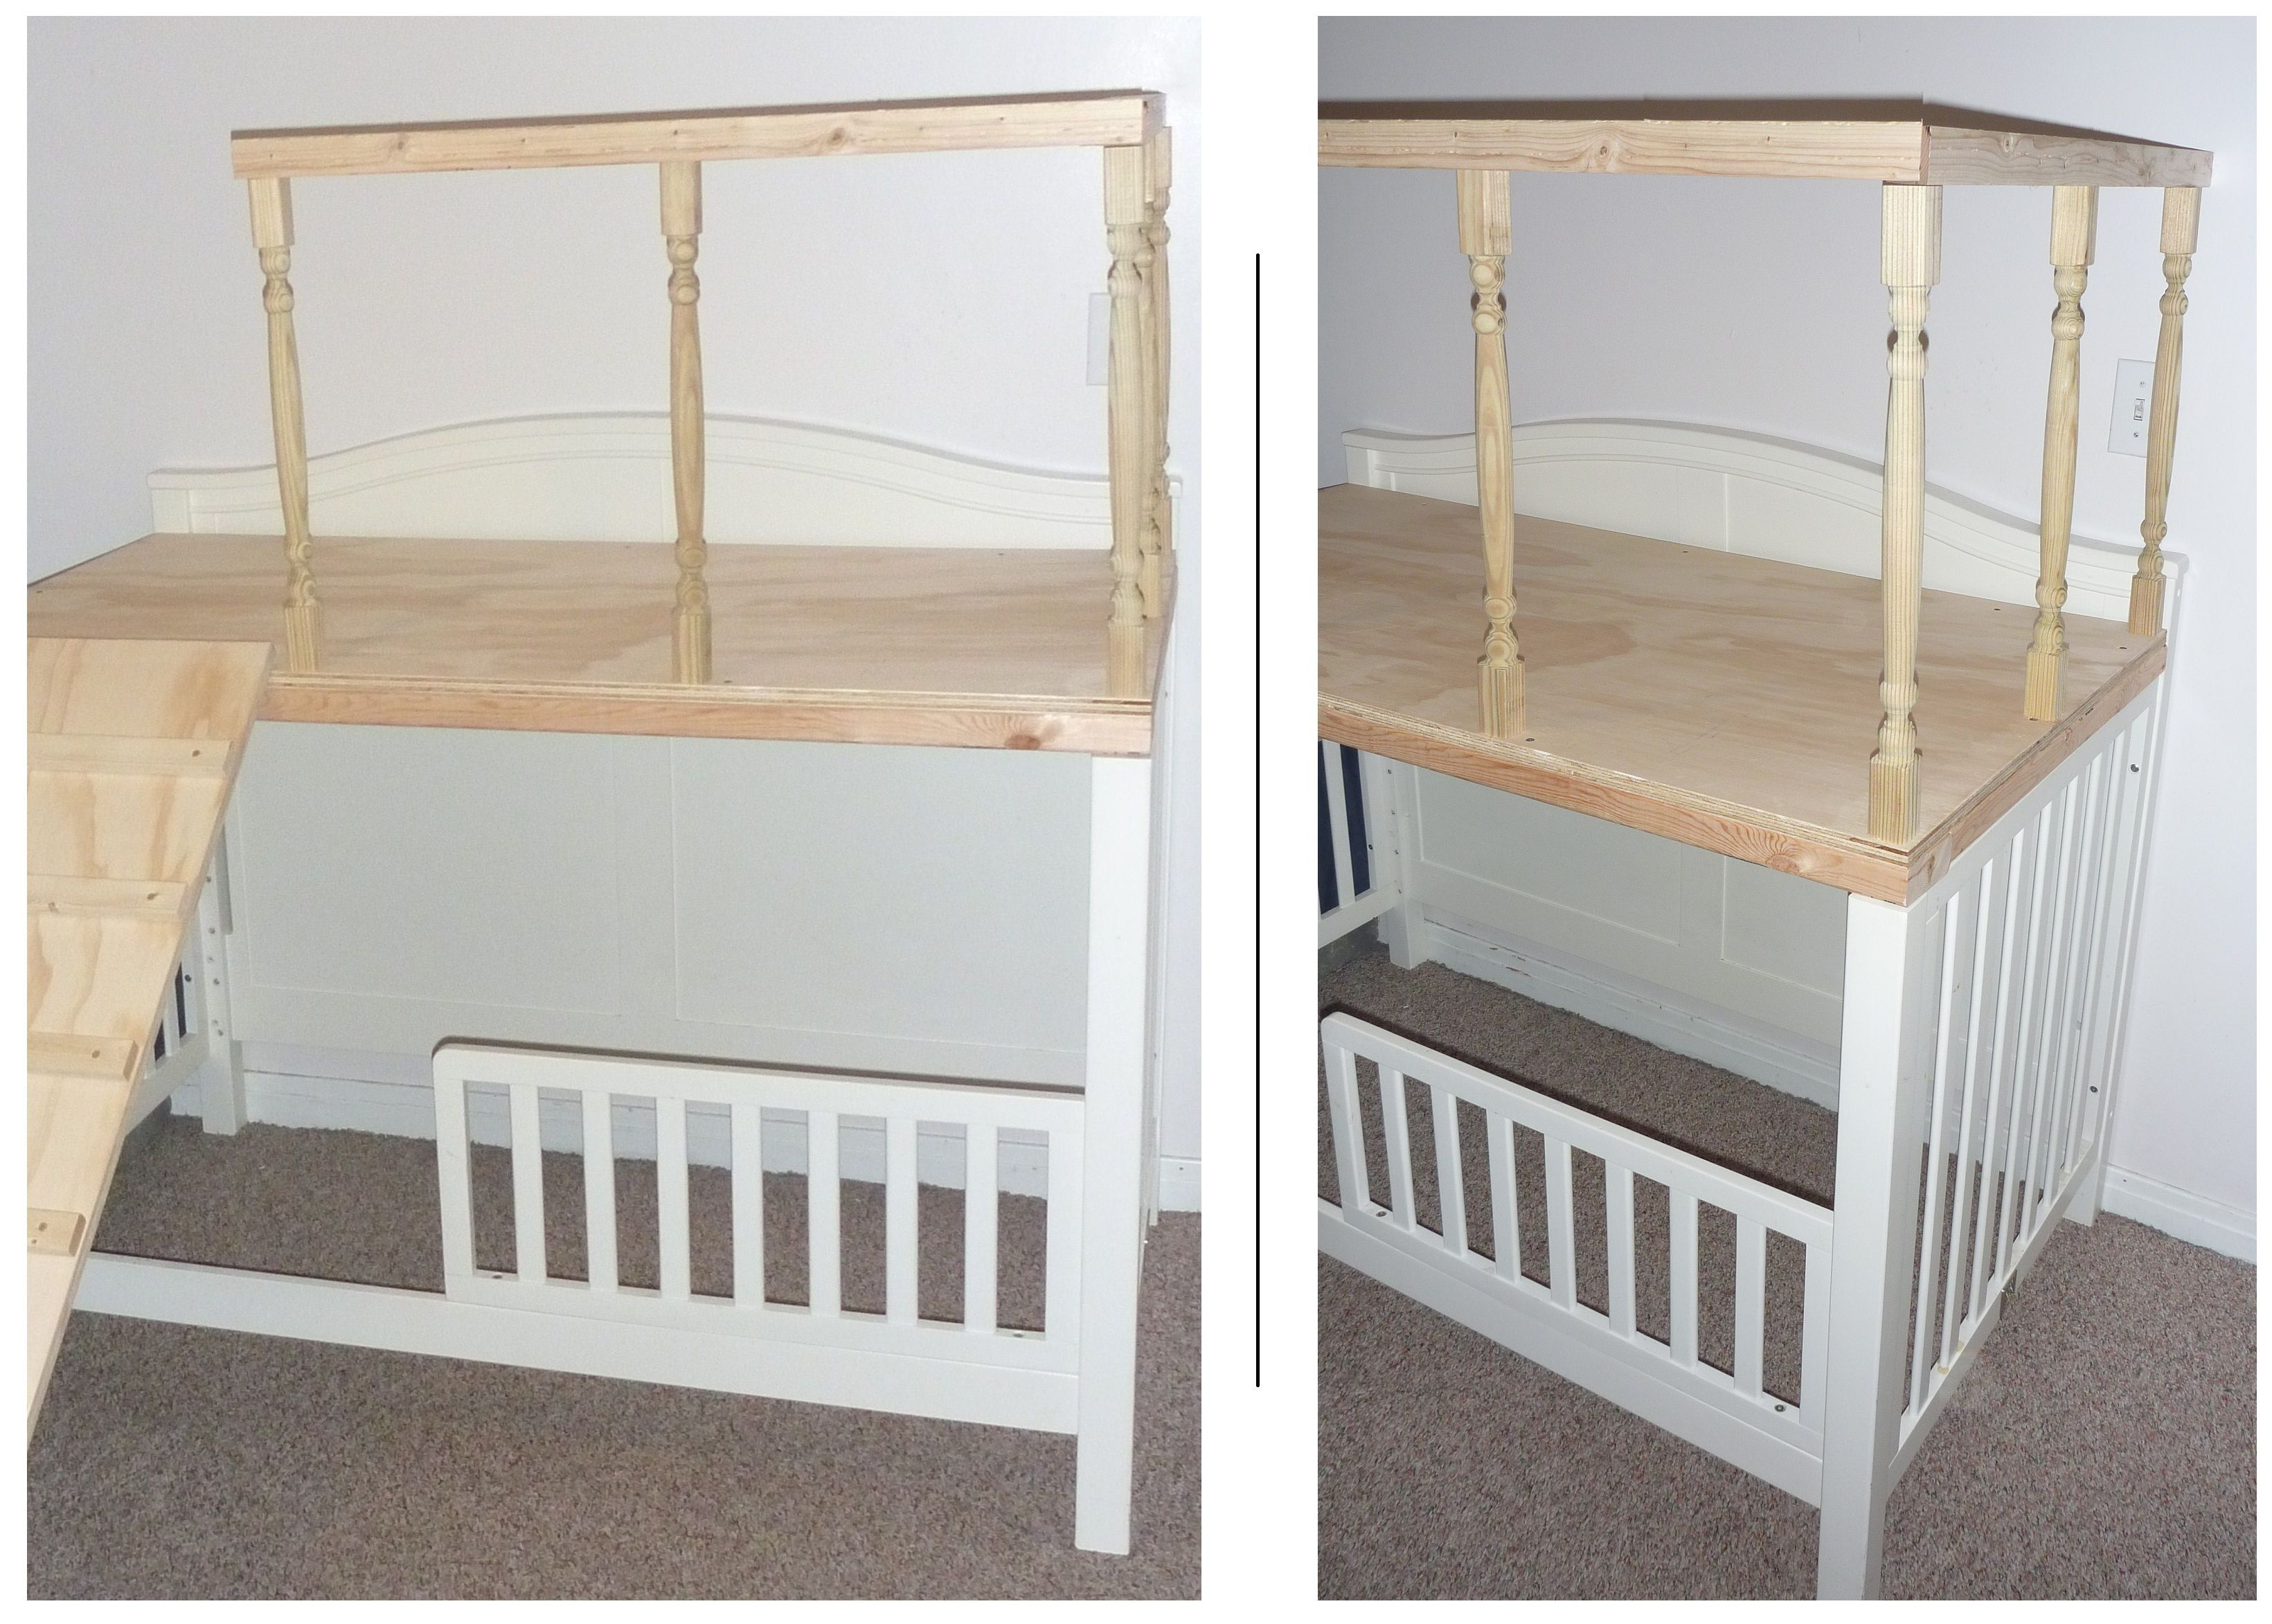 Convert A Crib To A Loft Play Area Maybe Reinforce The Frame A